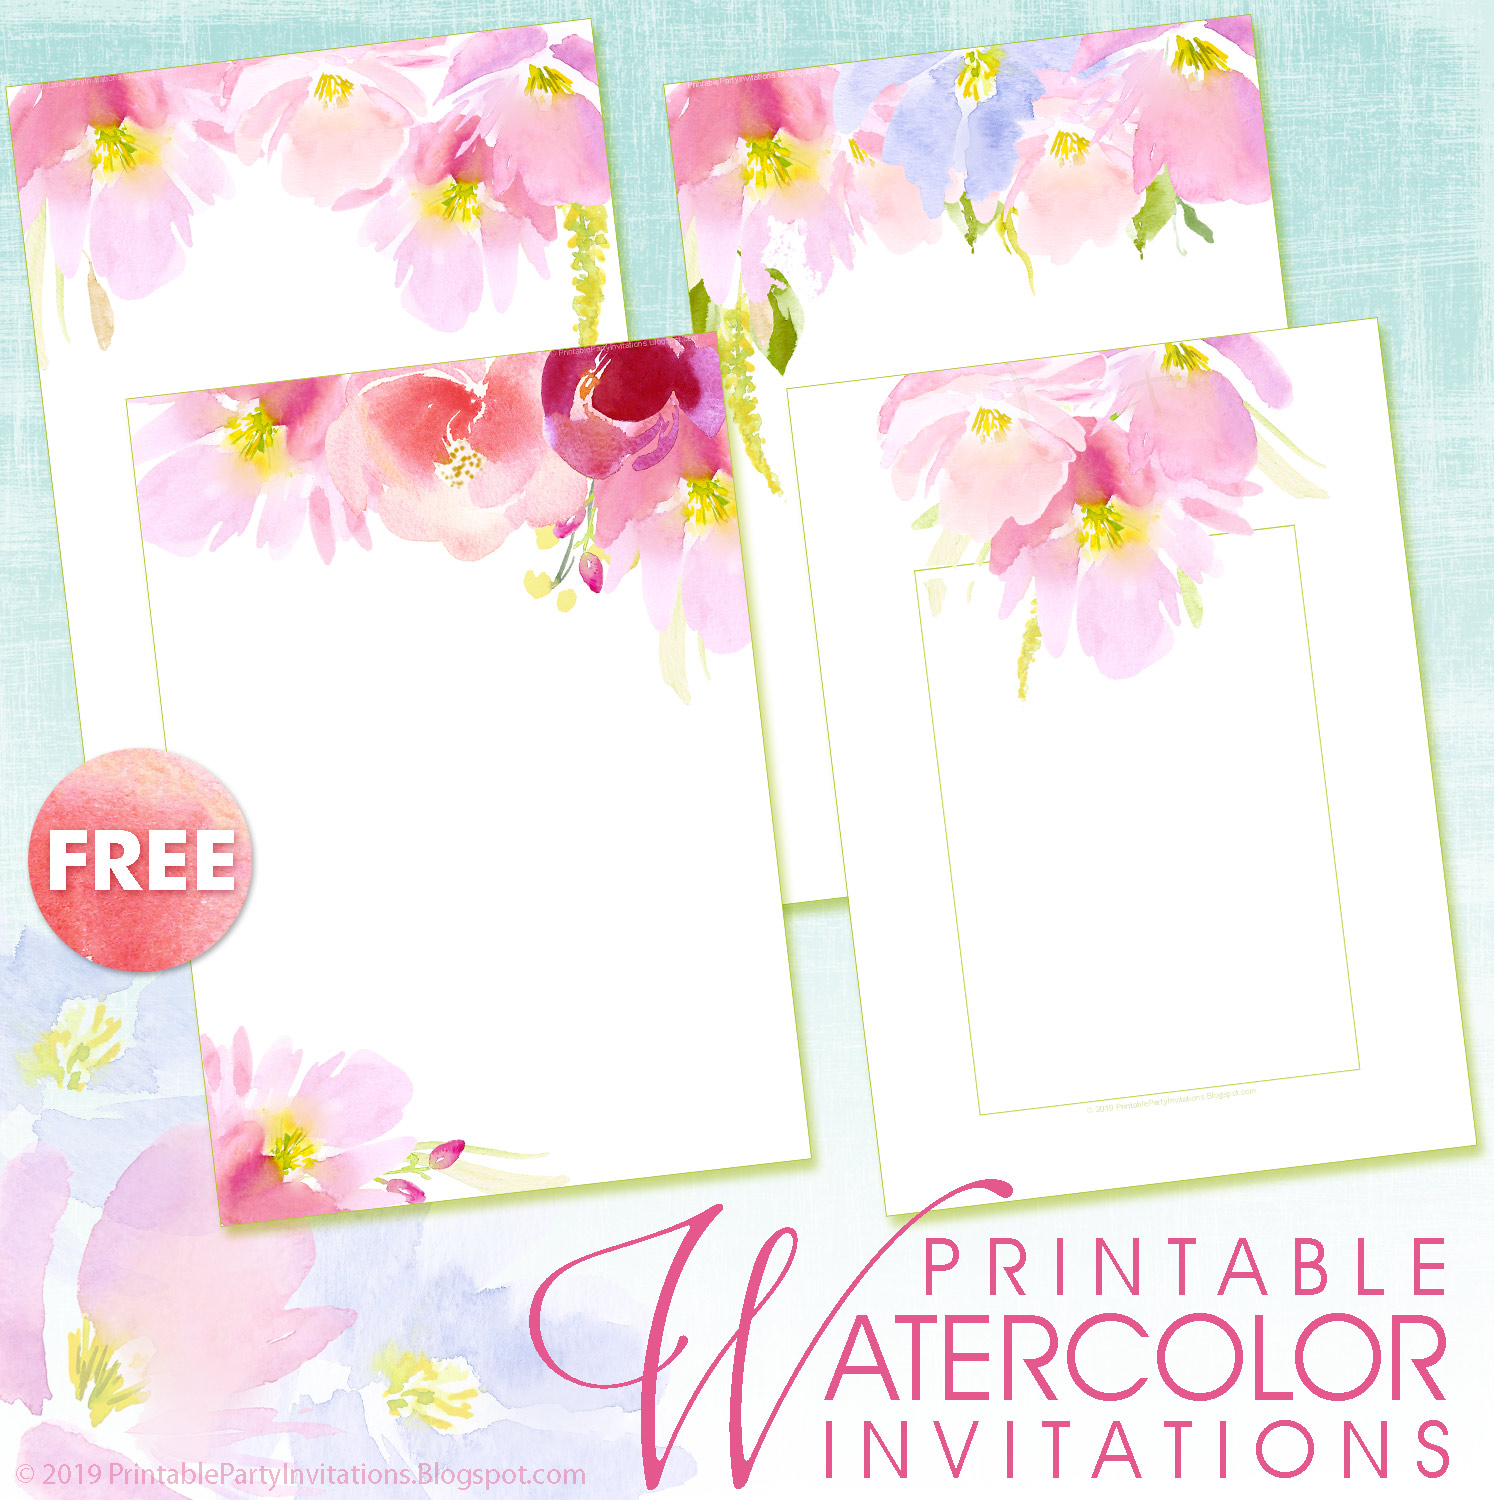 four free watercolor invitation templates